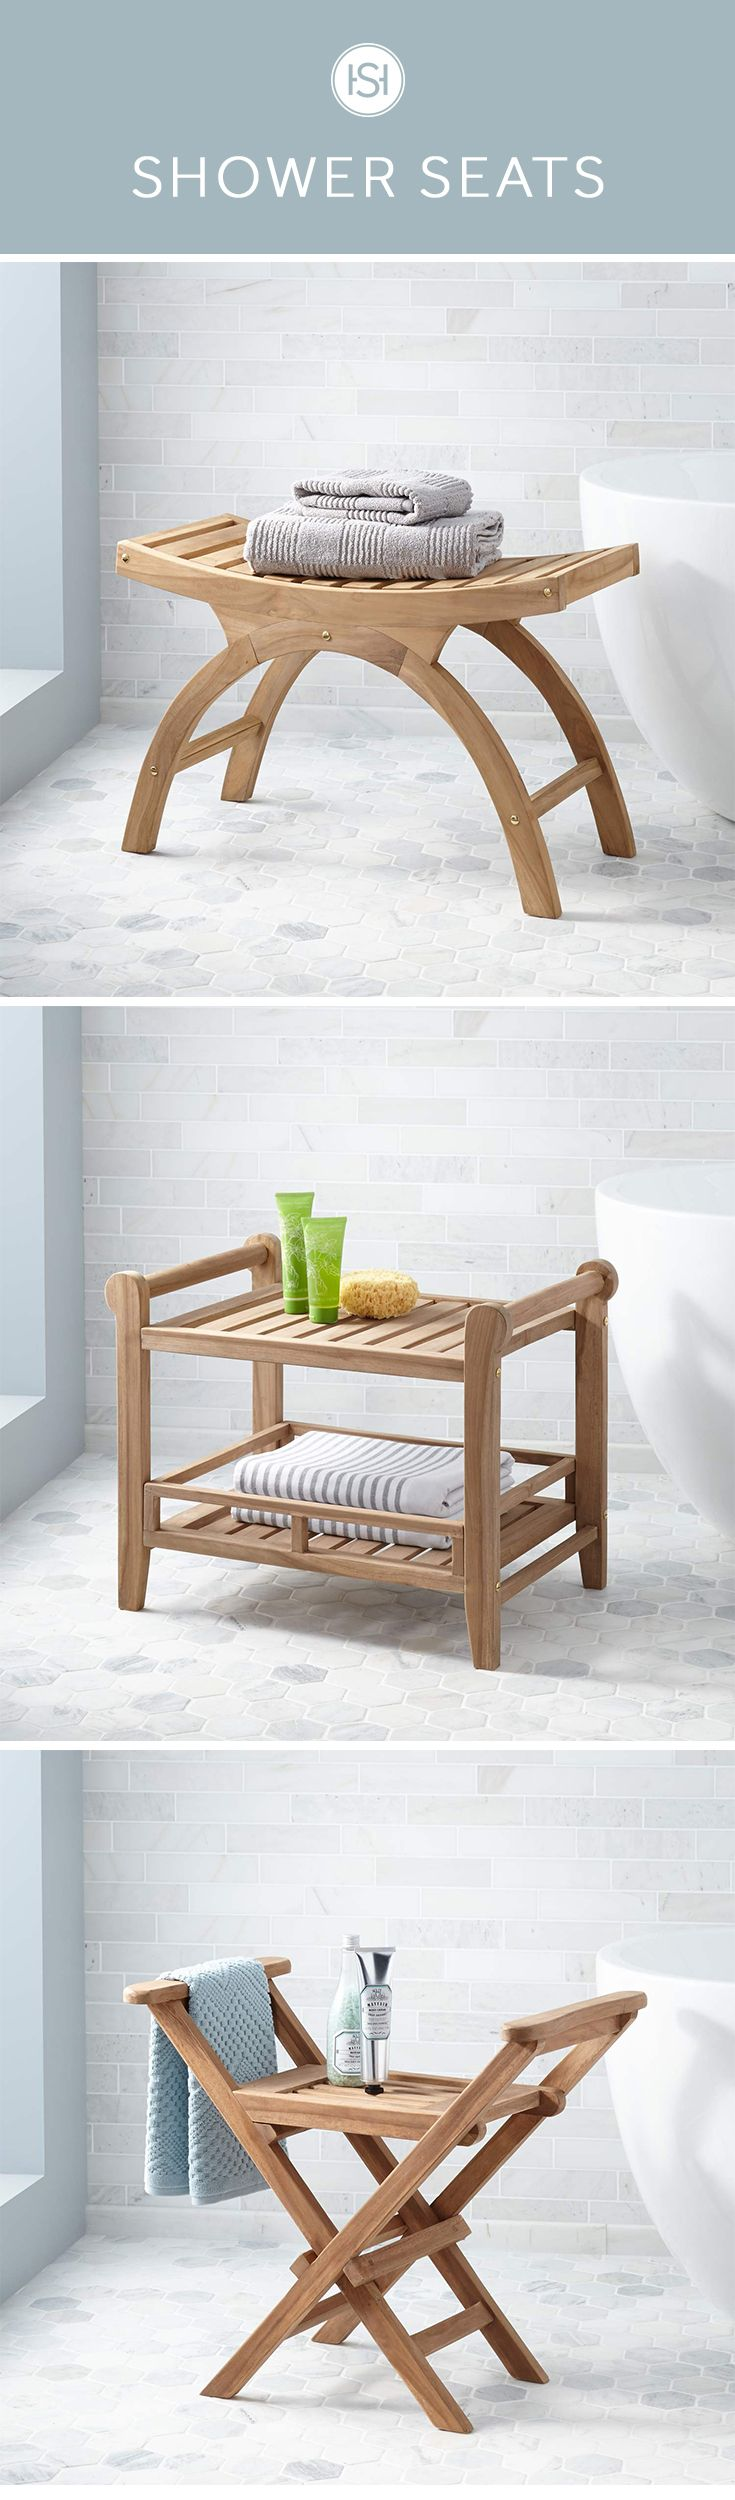 Enjoy the steam of a hot shower a little longer with a functional shower stool or seat. Shop a wide selection from folding seats to resin stools at Signature Hardware.